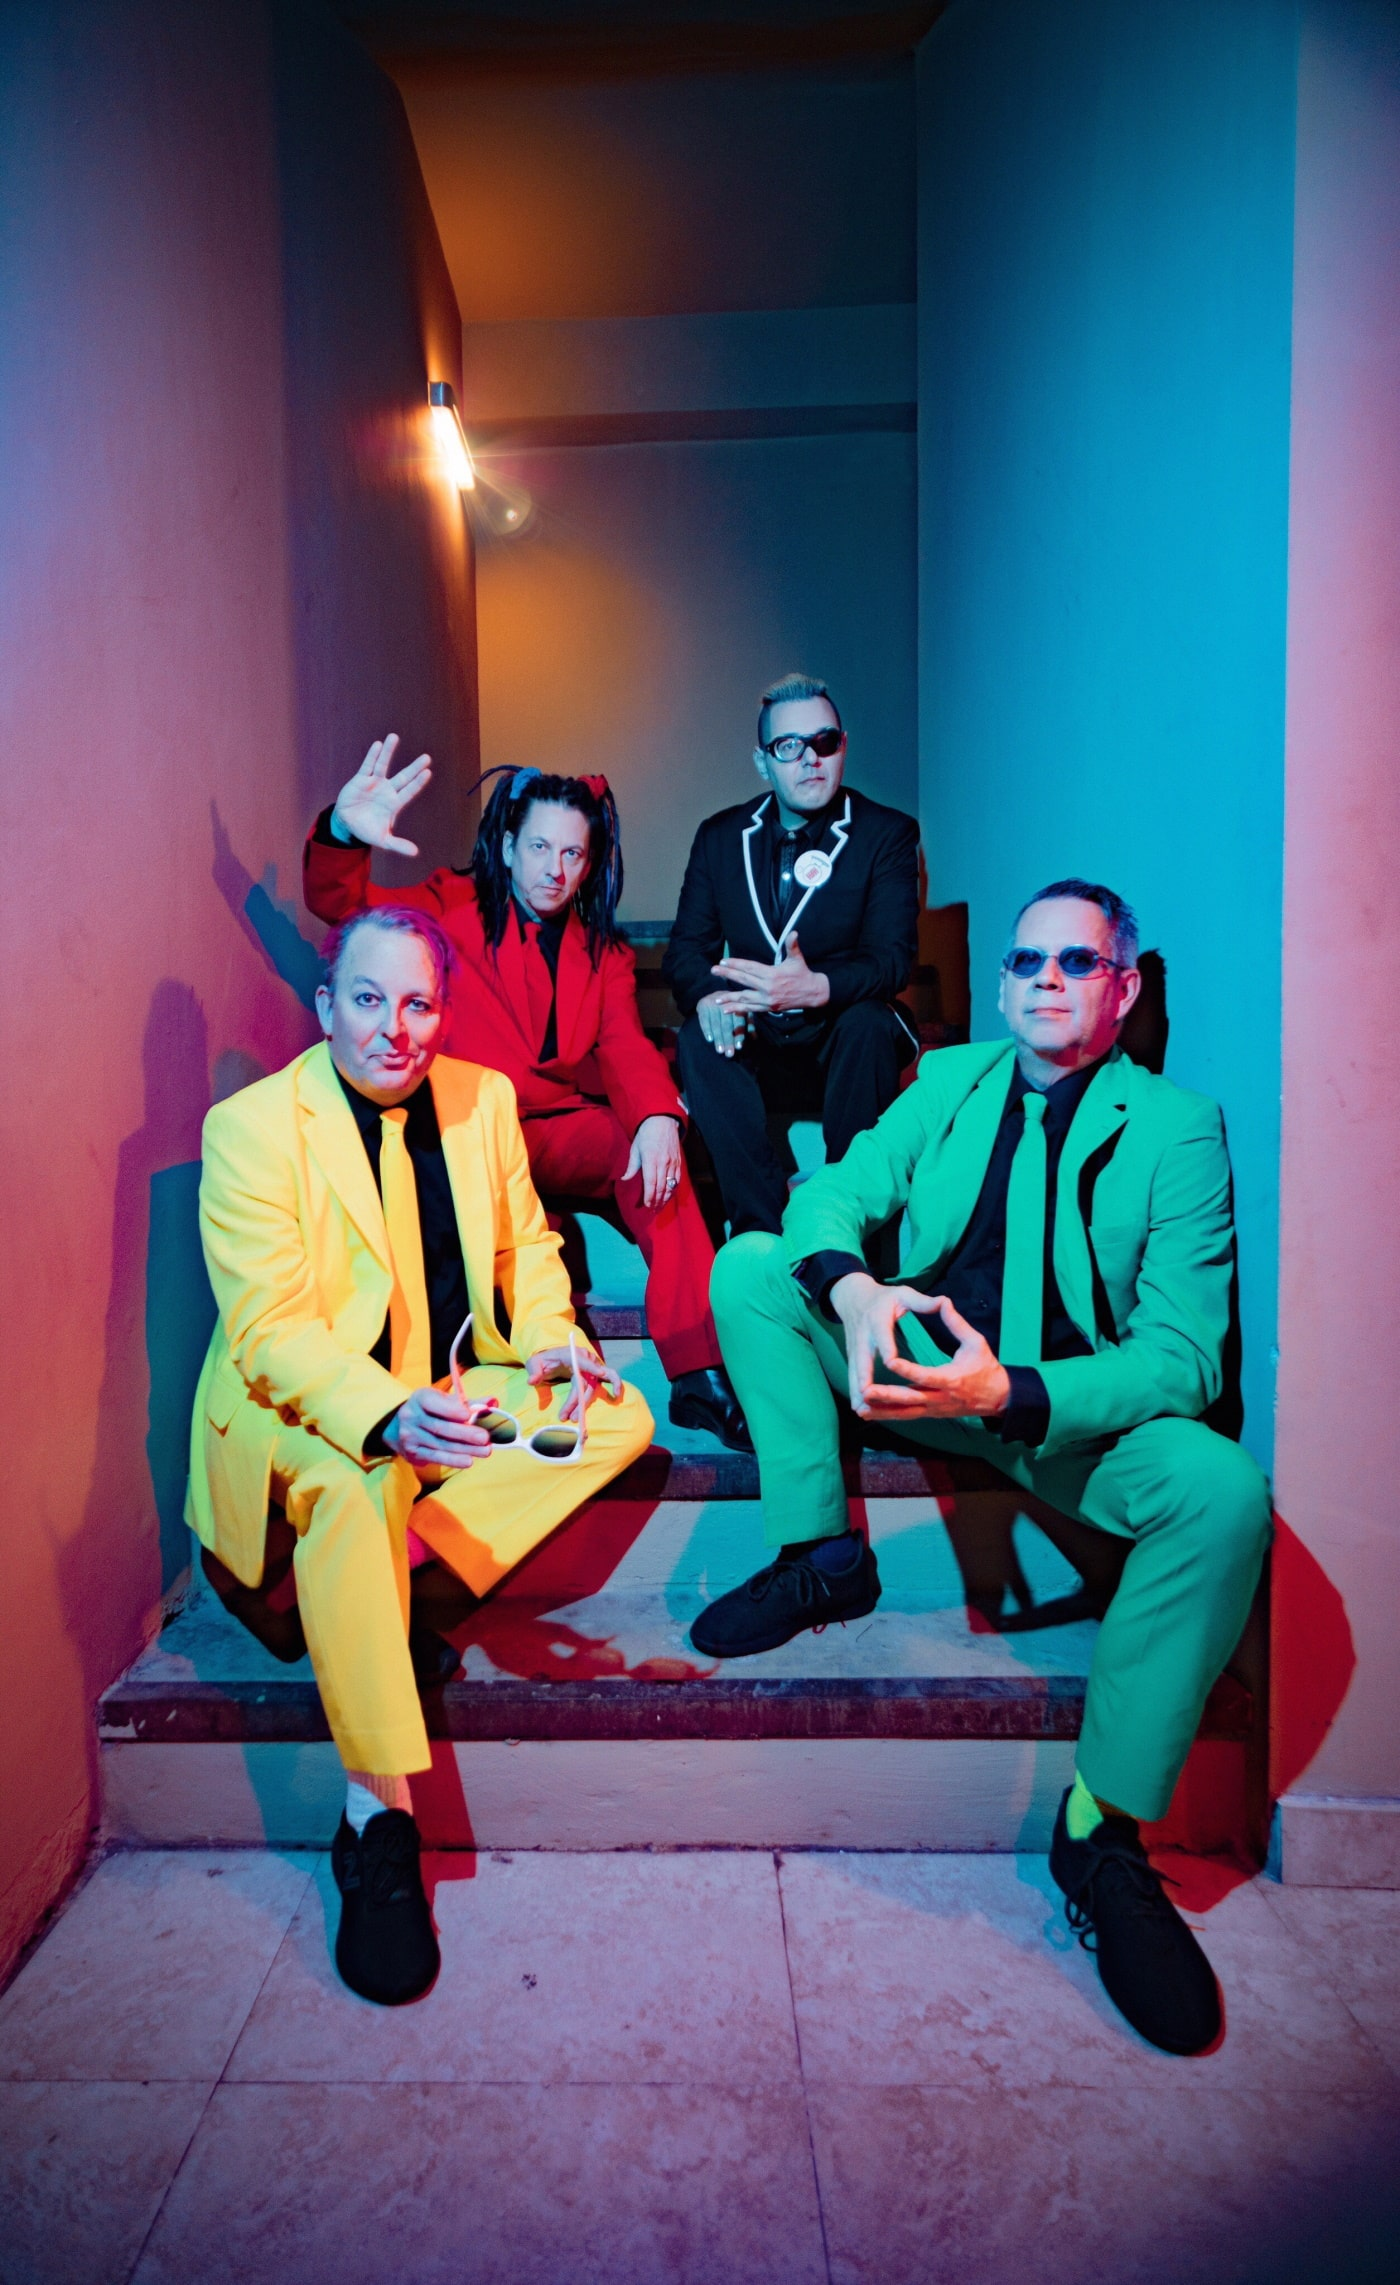 Information Society by Photo by Jonathan Shelgos